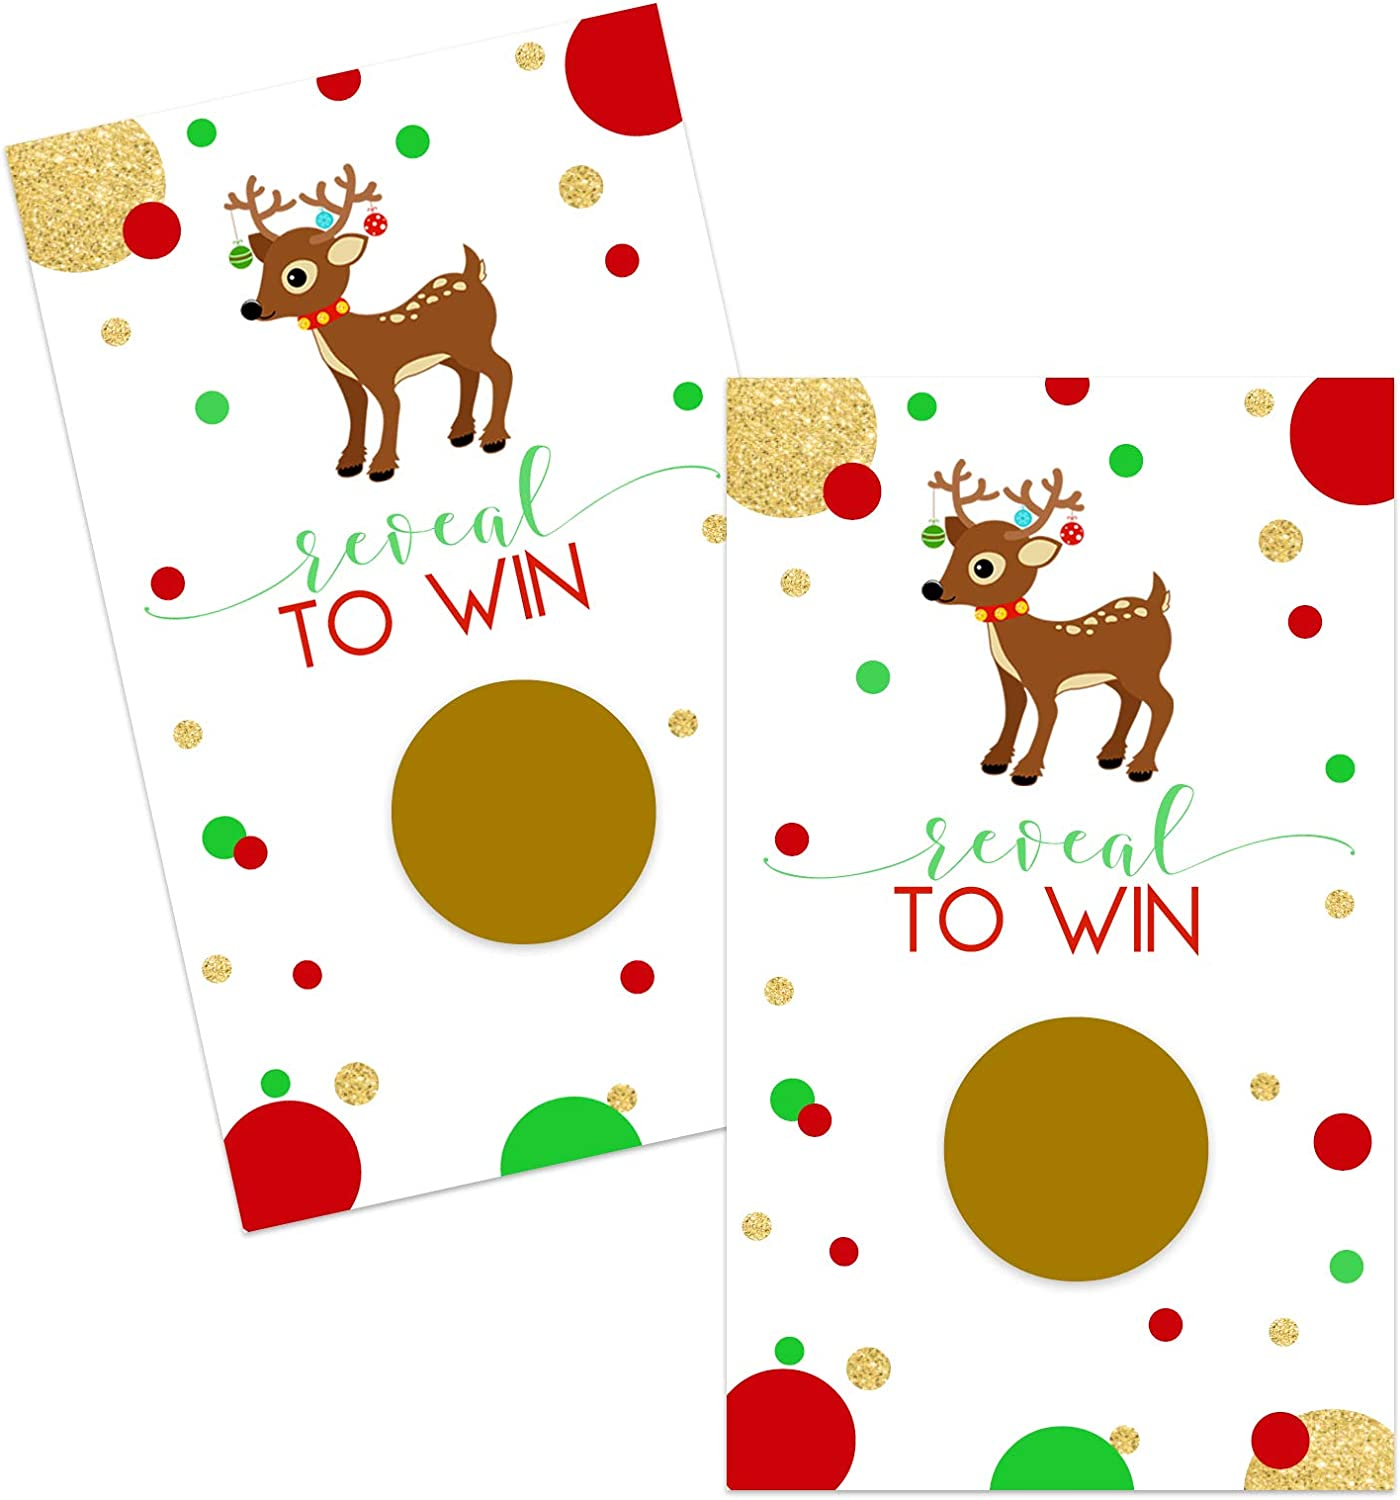 Amazon Com Reindeer Scratch Off Game Cards 28 Pack Christmas Party Supplies Holiday Events Groups Kids Adults Festive Raffle Tickets Business Prize Drawings Fun Red Green Gold Toys Games